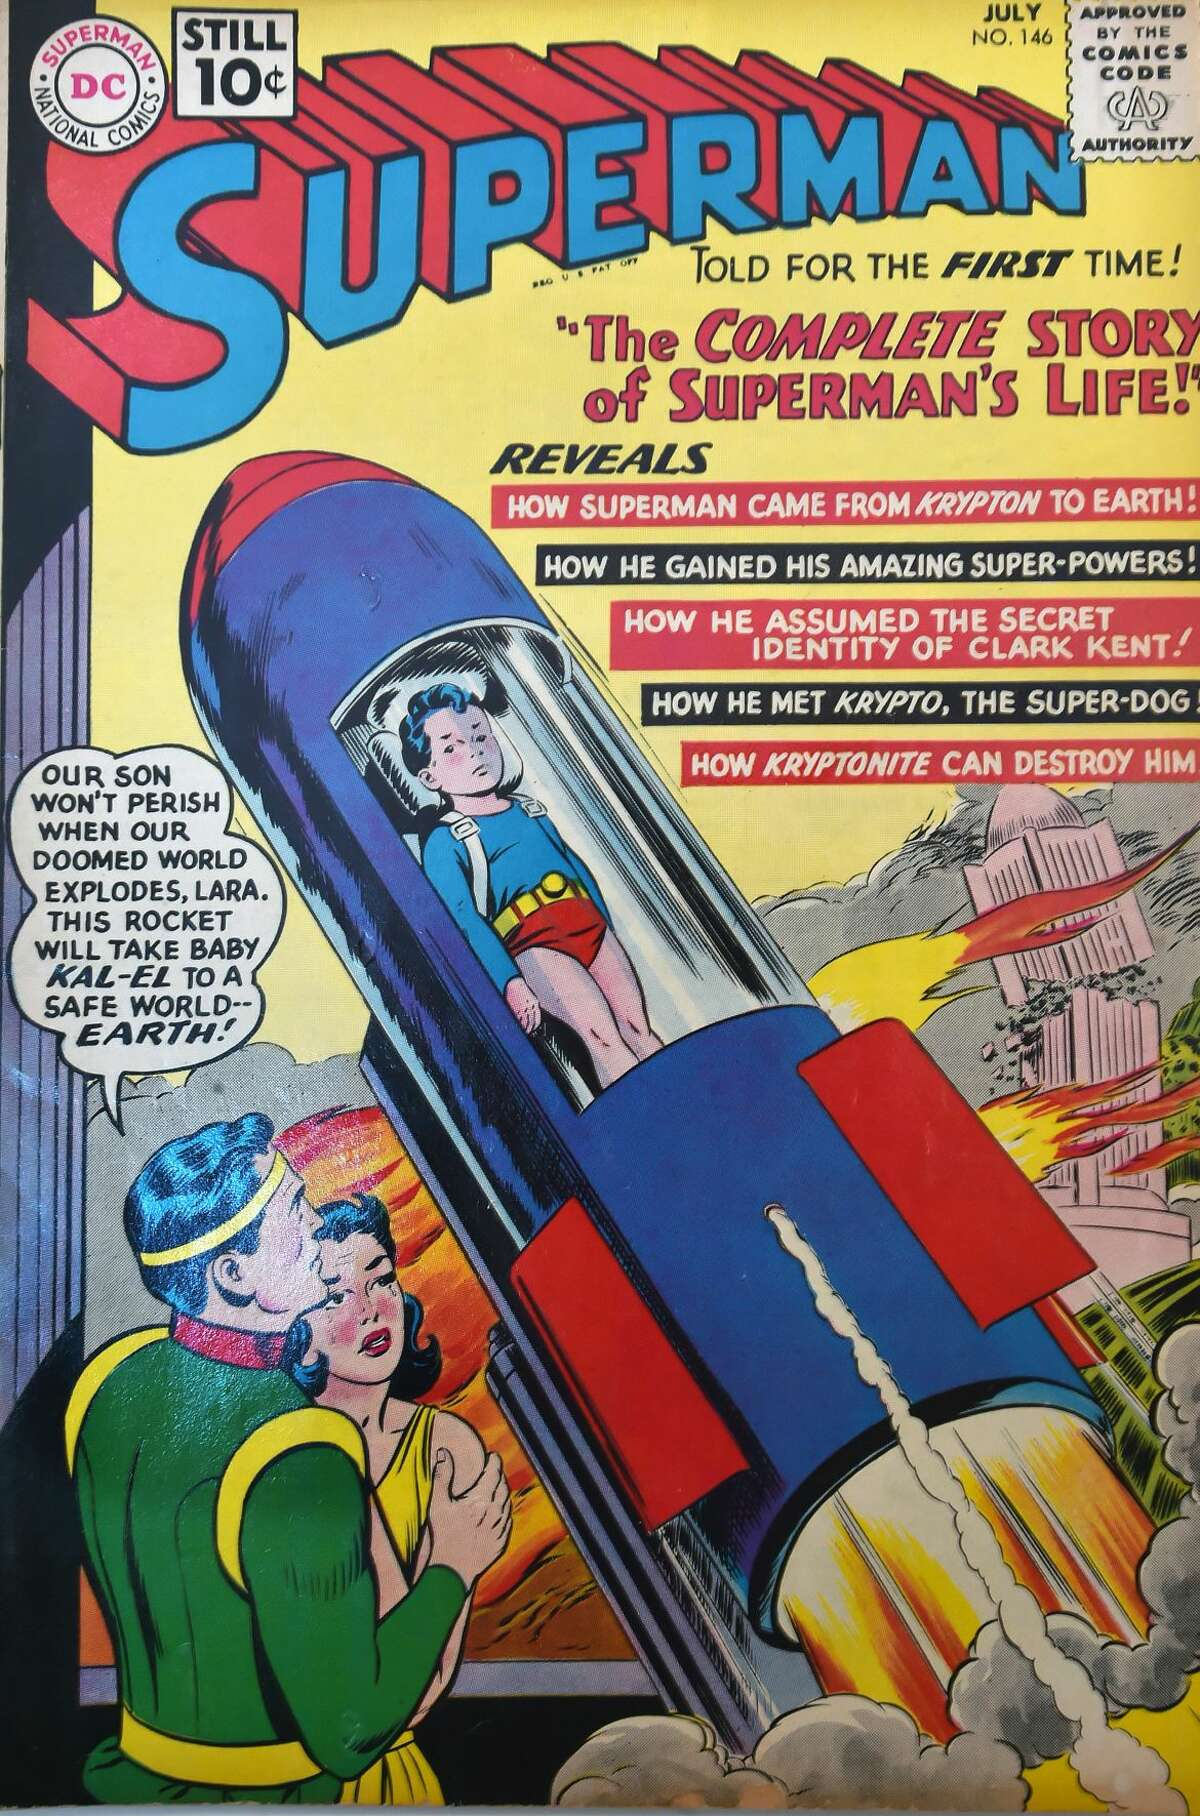 A Superman DC comic book from the collection of Randall Beach.